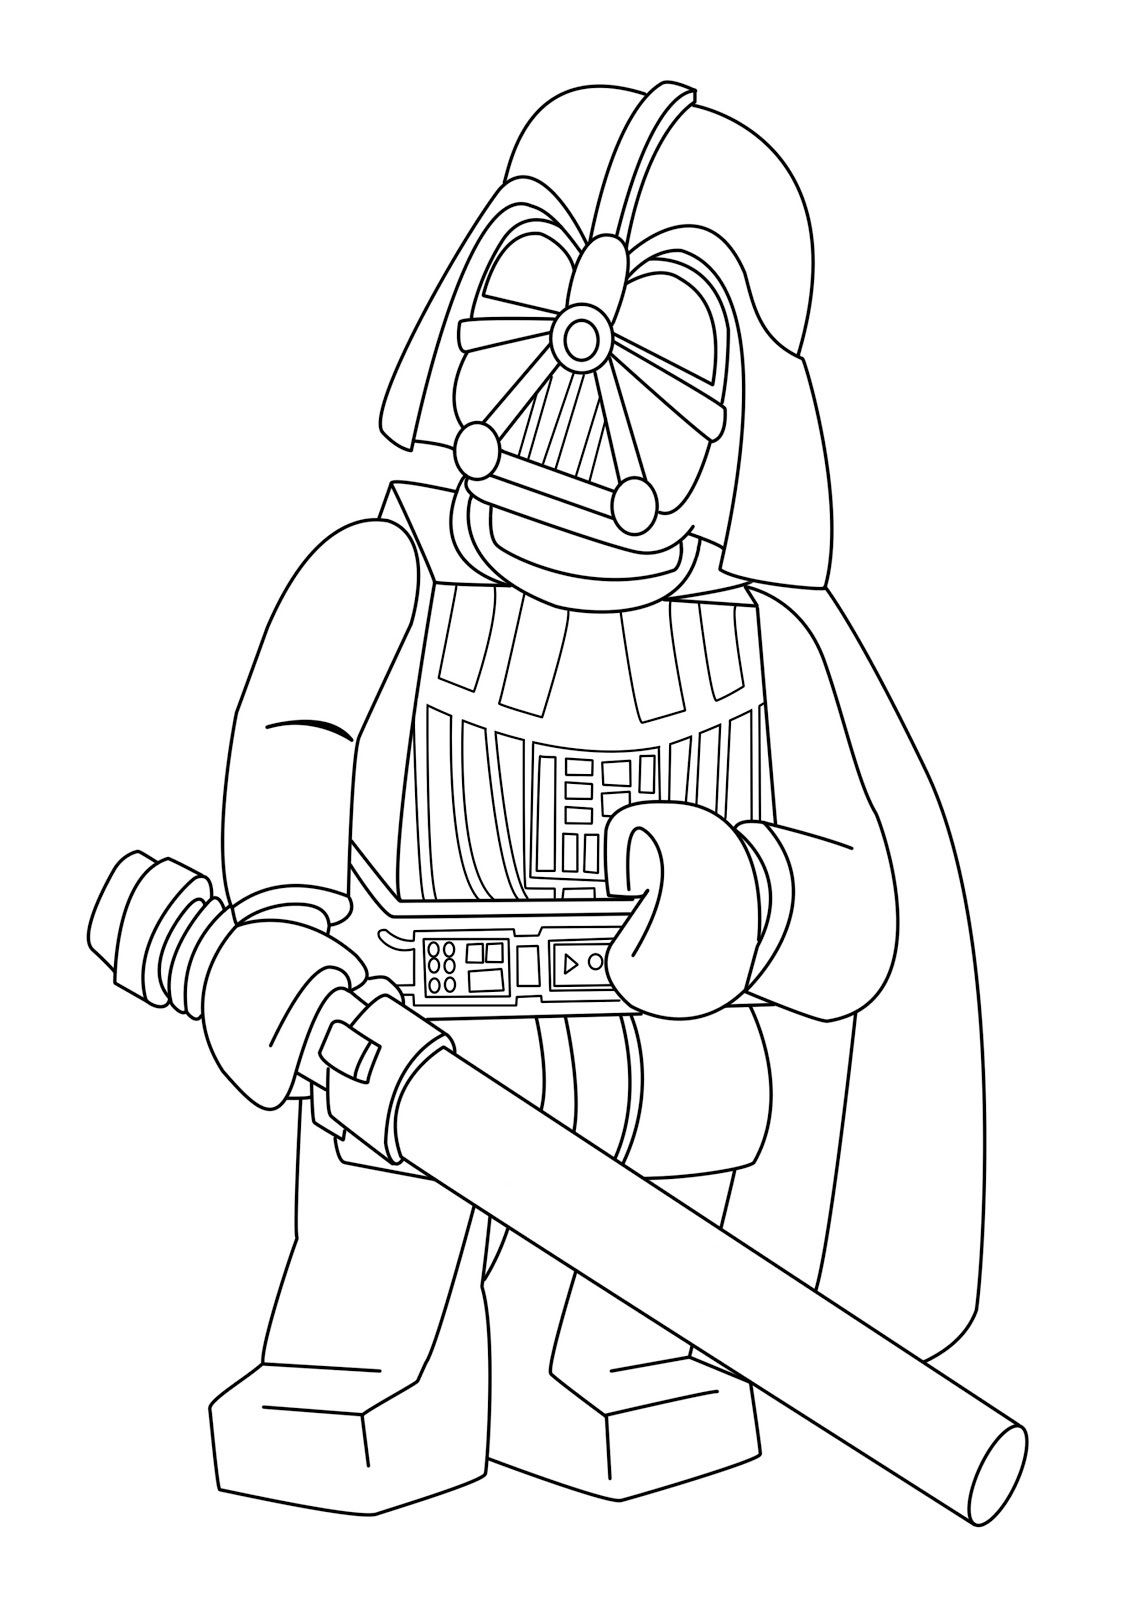 lego star wars colouring pages - Lego Princess Leia Coloring Pages